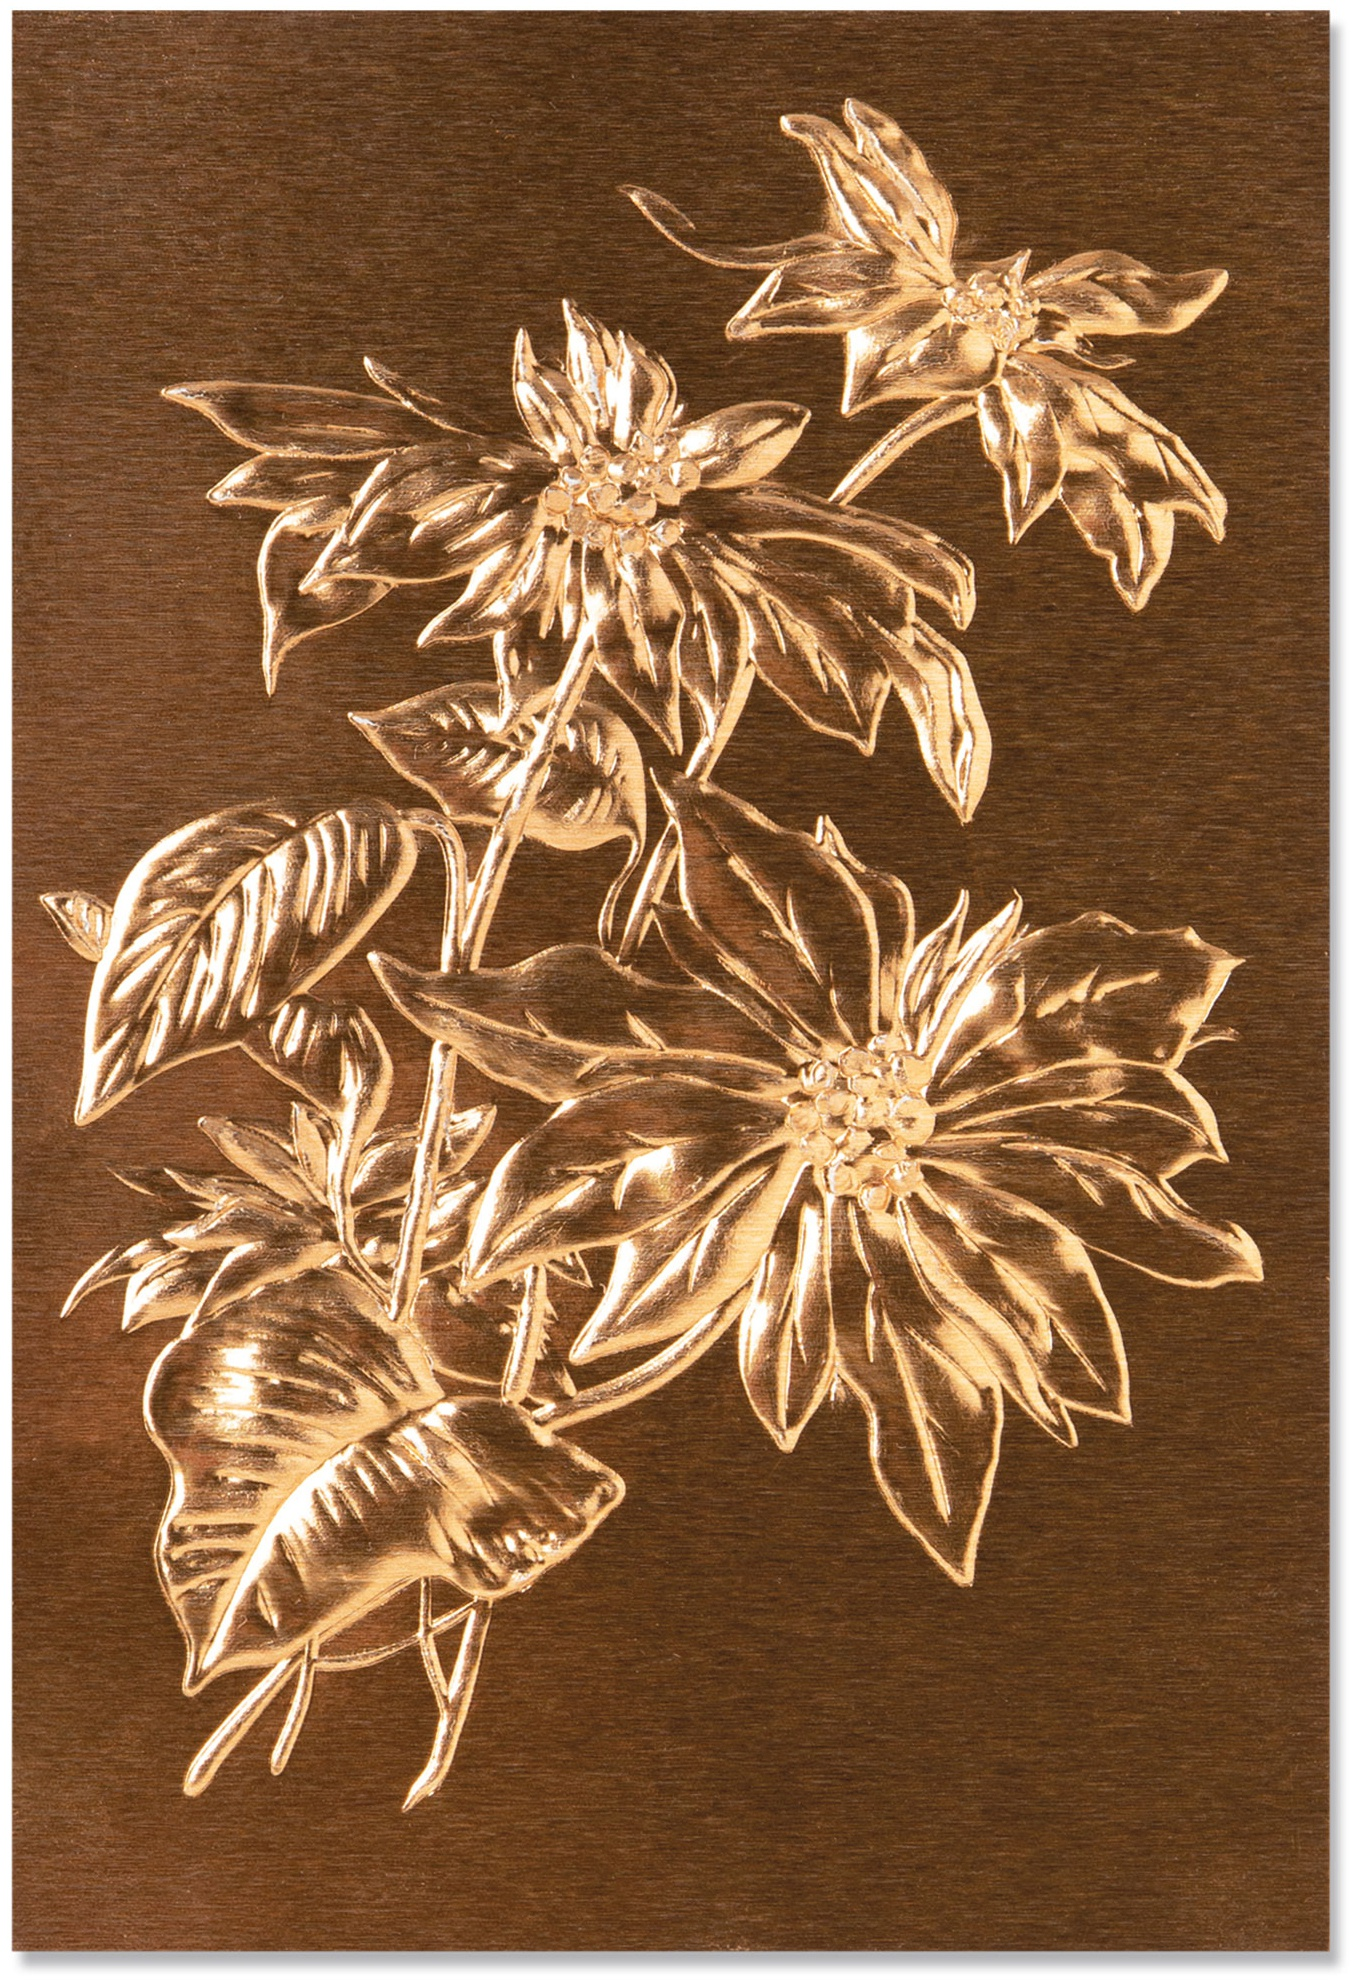 Sizzix Texture Fades Embossing Folder By Tim Holtz-Poinsettia